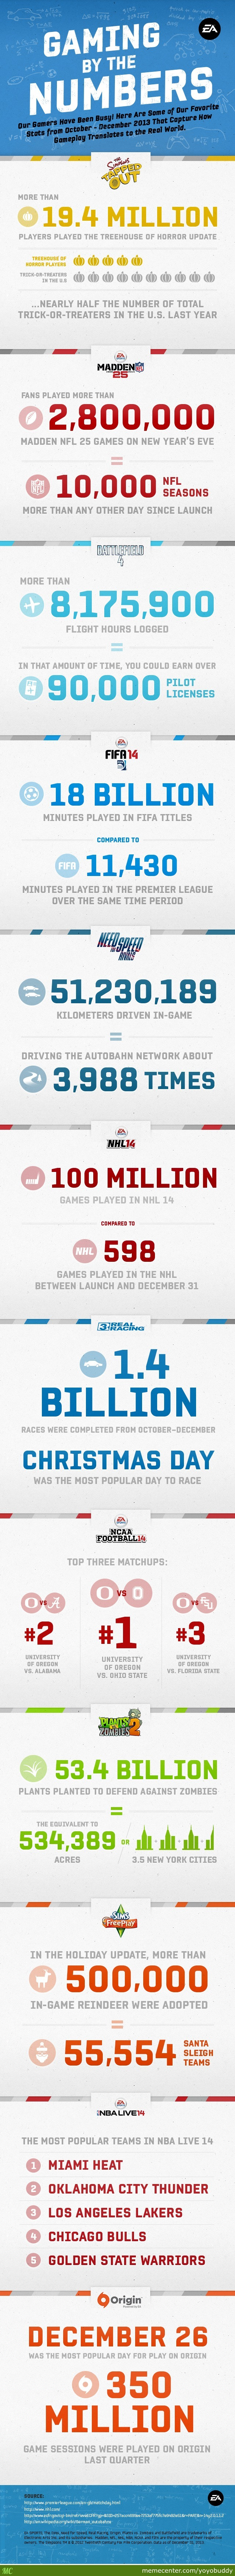 Electronic Arts By The Numbers